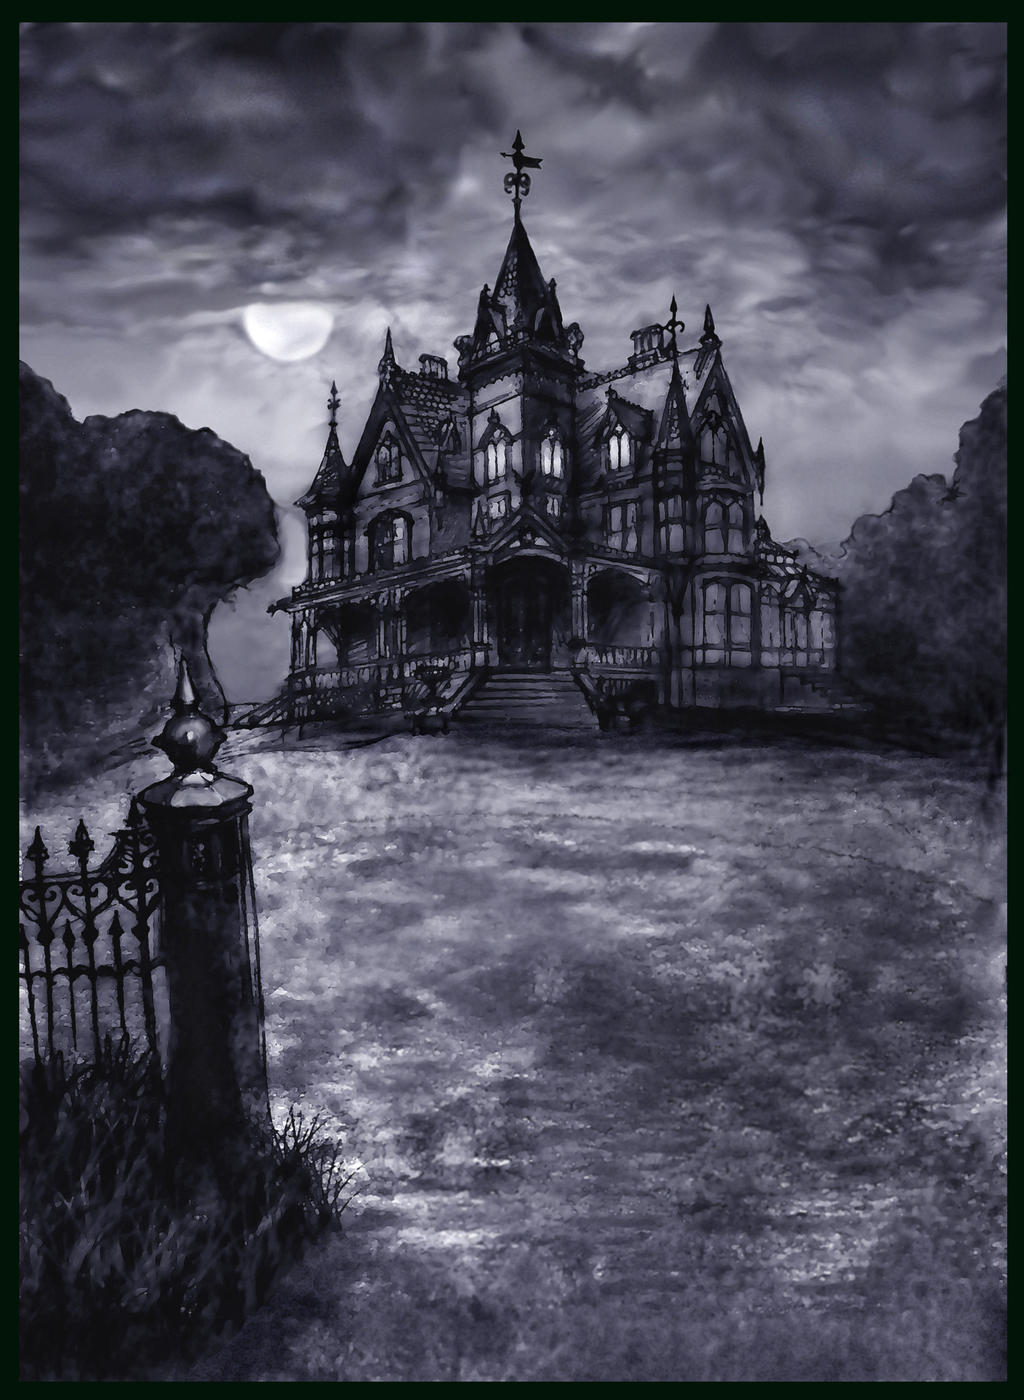 Victorian Gothic House victorian gothic house. good gothic bedroom furniture industry